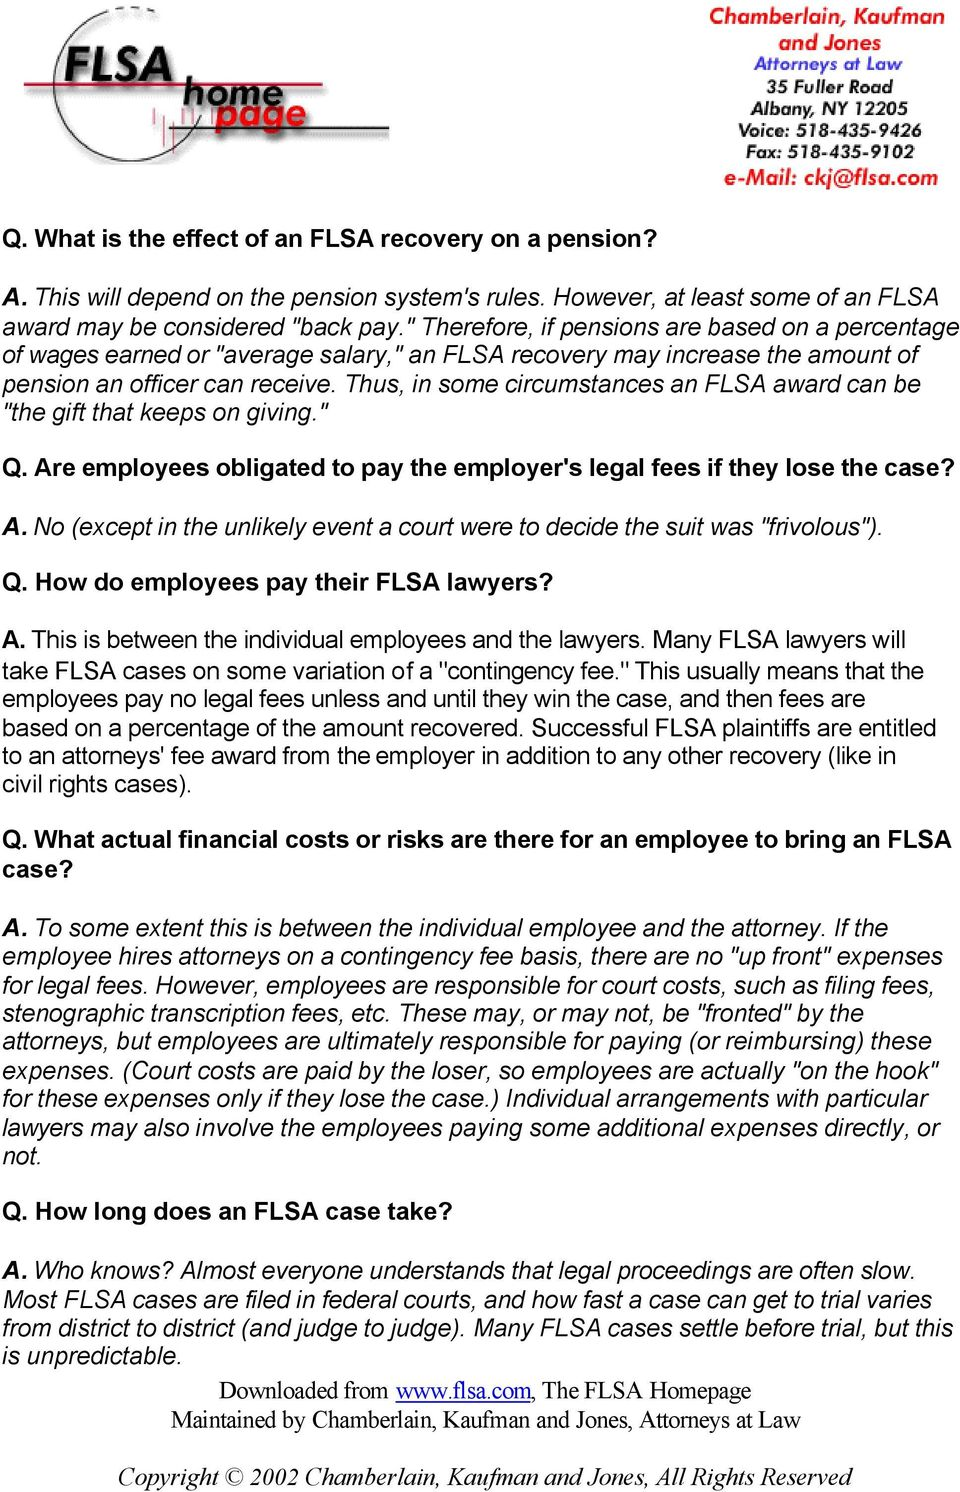 "Thus, in some circumstances an FLSA award can be ""the gift that keeps on giving."" Q. Are employees obligated to pay the employer's legal fees if they lose the case? A. No (except in the unlikely event a court were to decide the suit was ""frivolous"")."